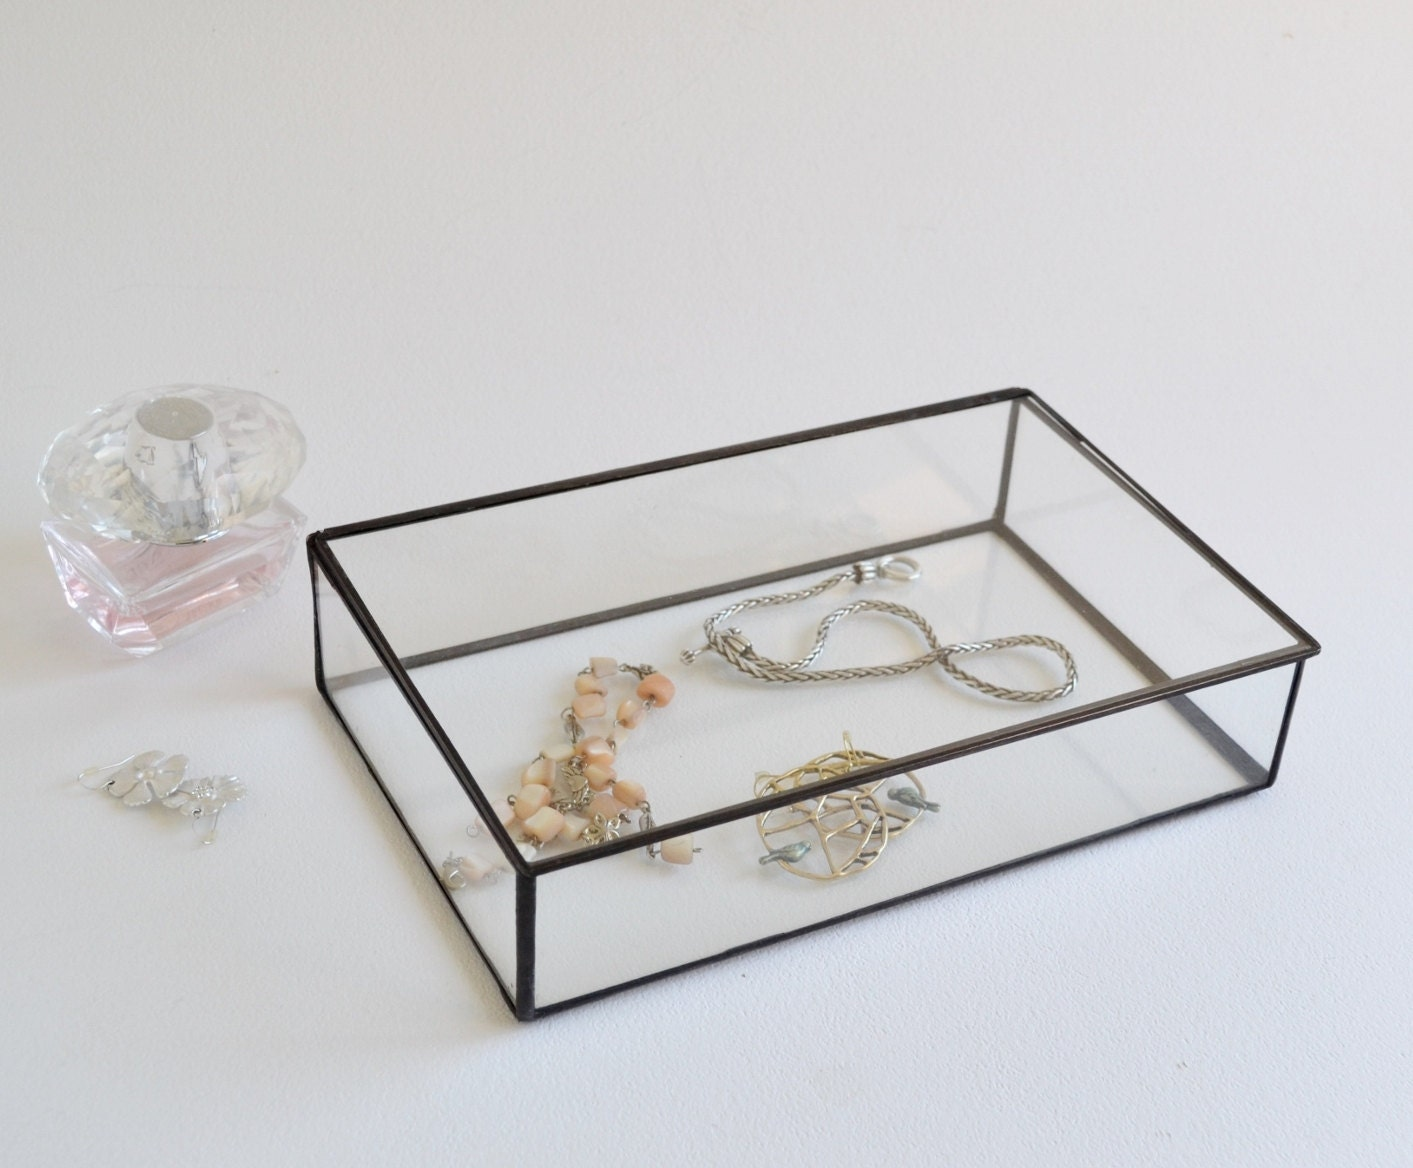 Shop for retail glass cubes at Display Warehouse, your glass cube unit and glass display super supply warehouse! We have a wide selection of glass cube display merchandisers you need for .